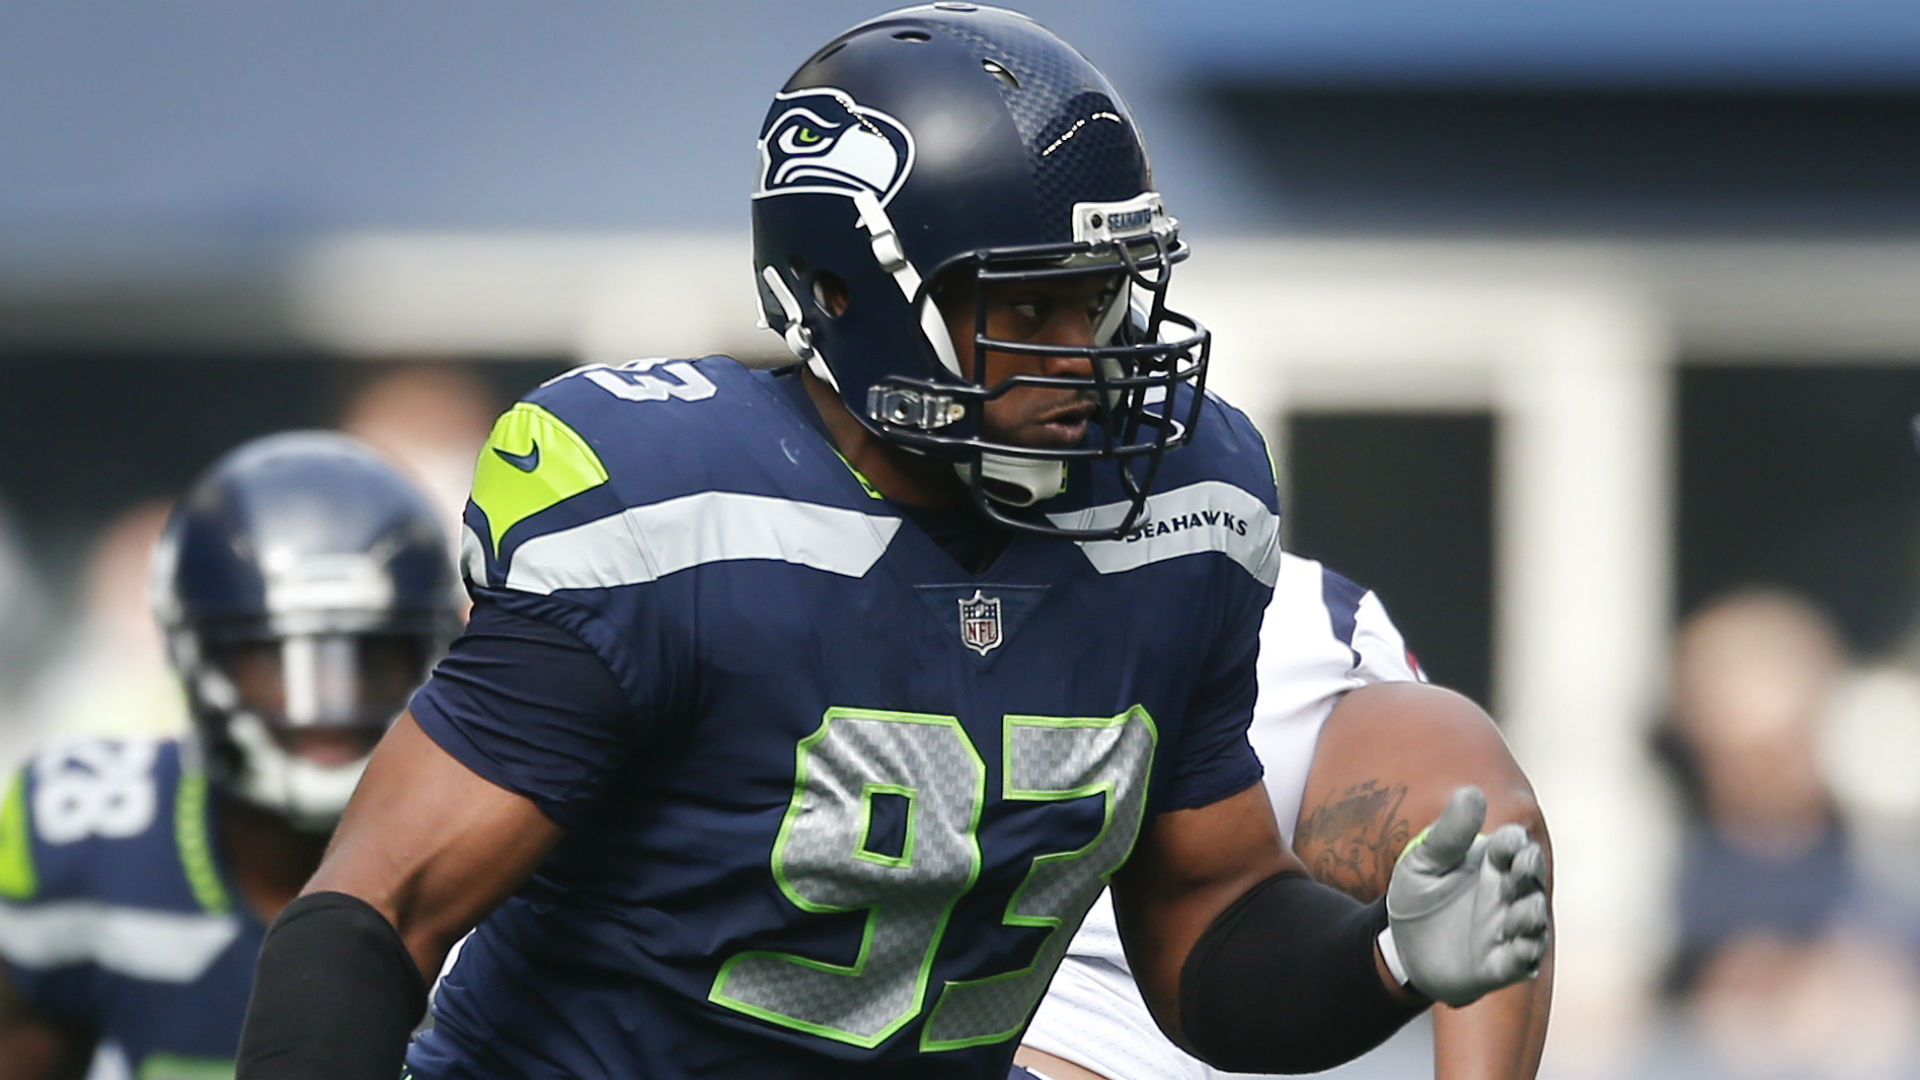 Lions awarded DE Dwight Freeney via waivers from Seattle